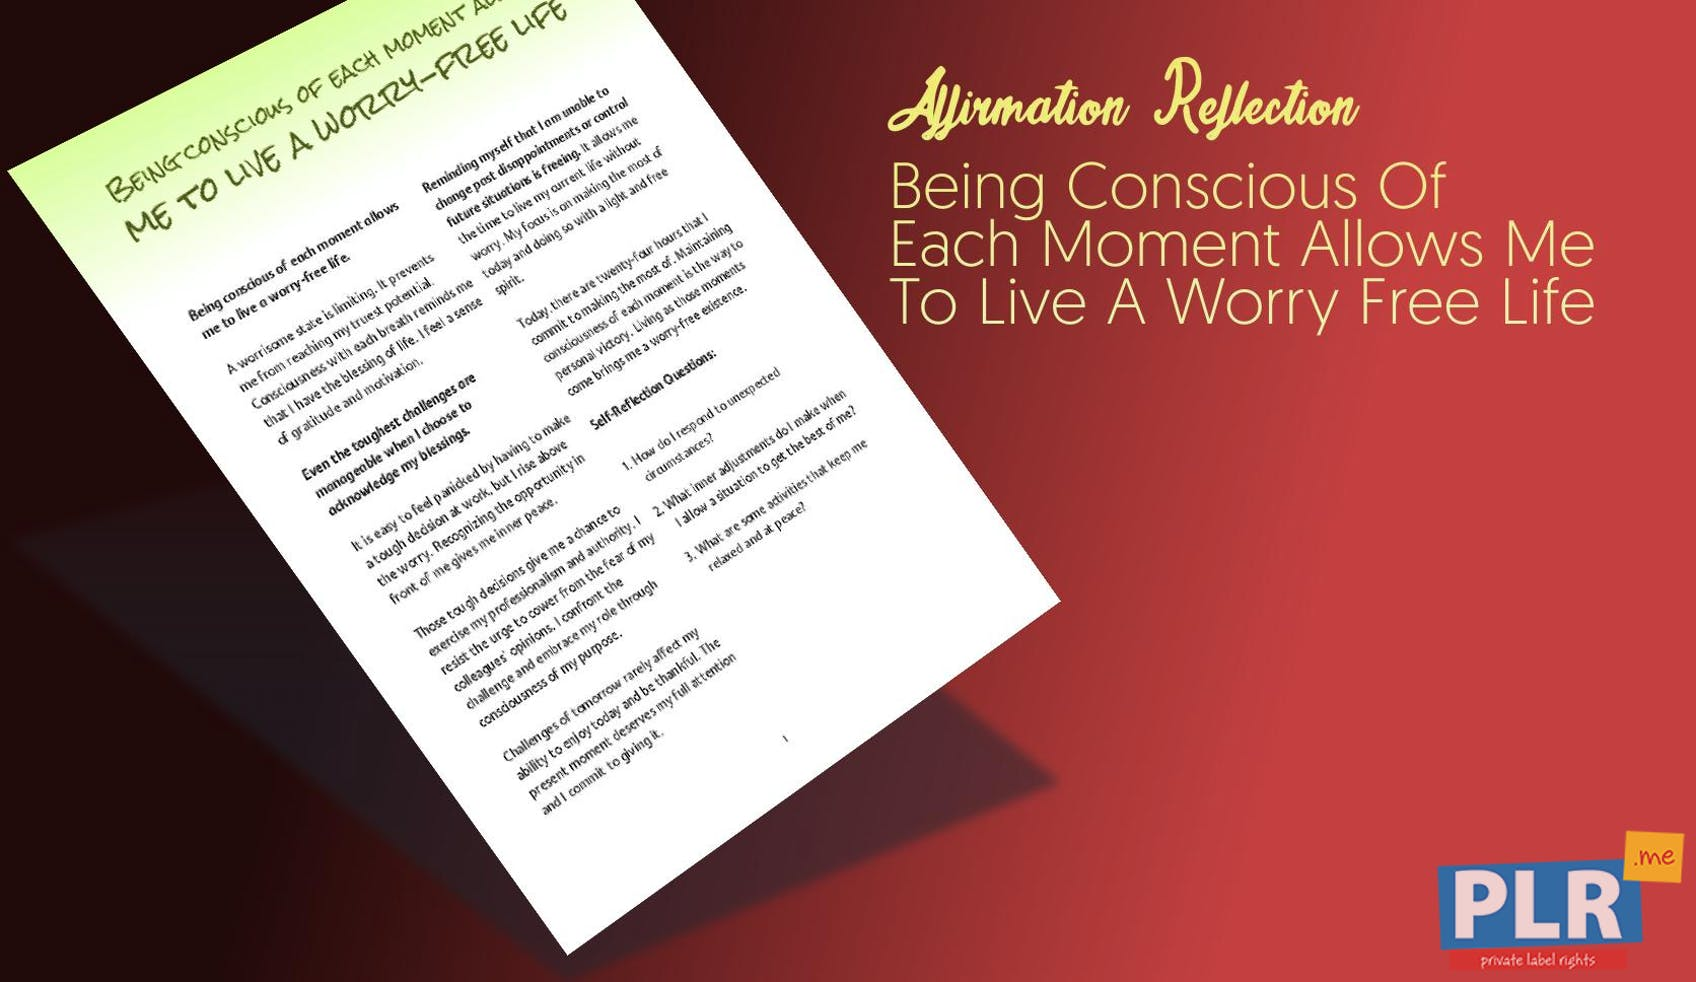 Being Conscious Of Each Moment Allows Me To Live A Worry Free Life